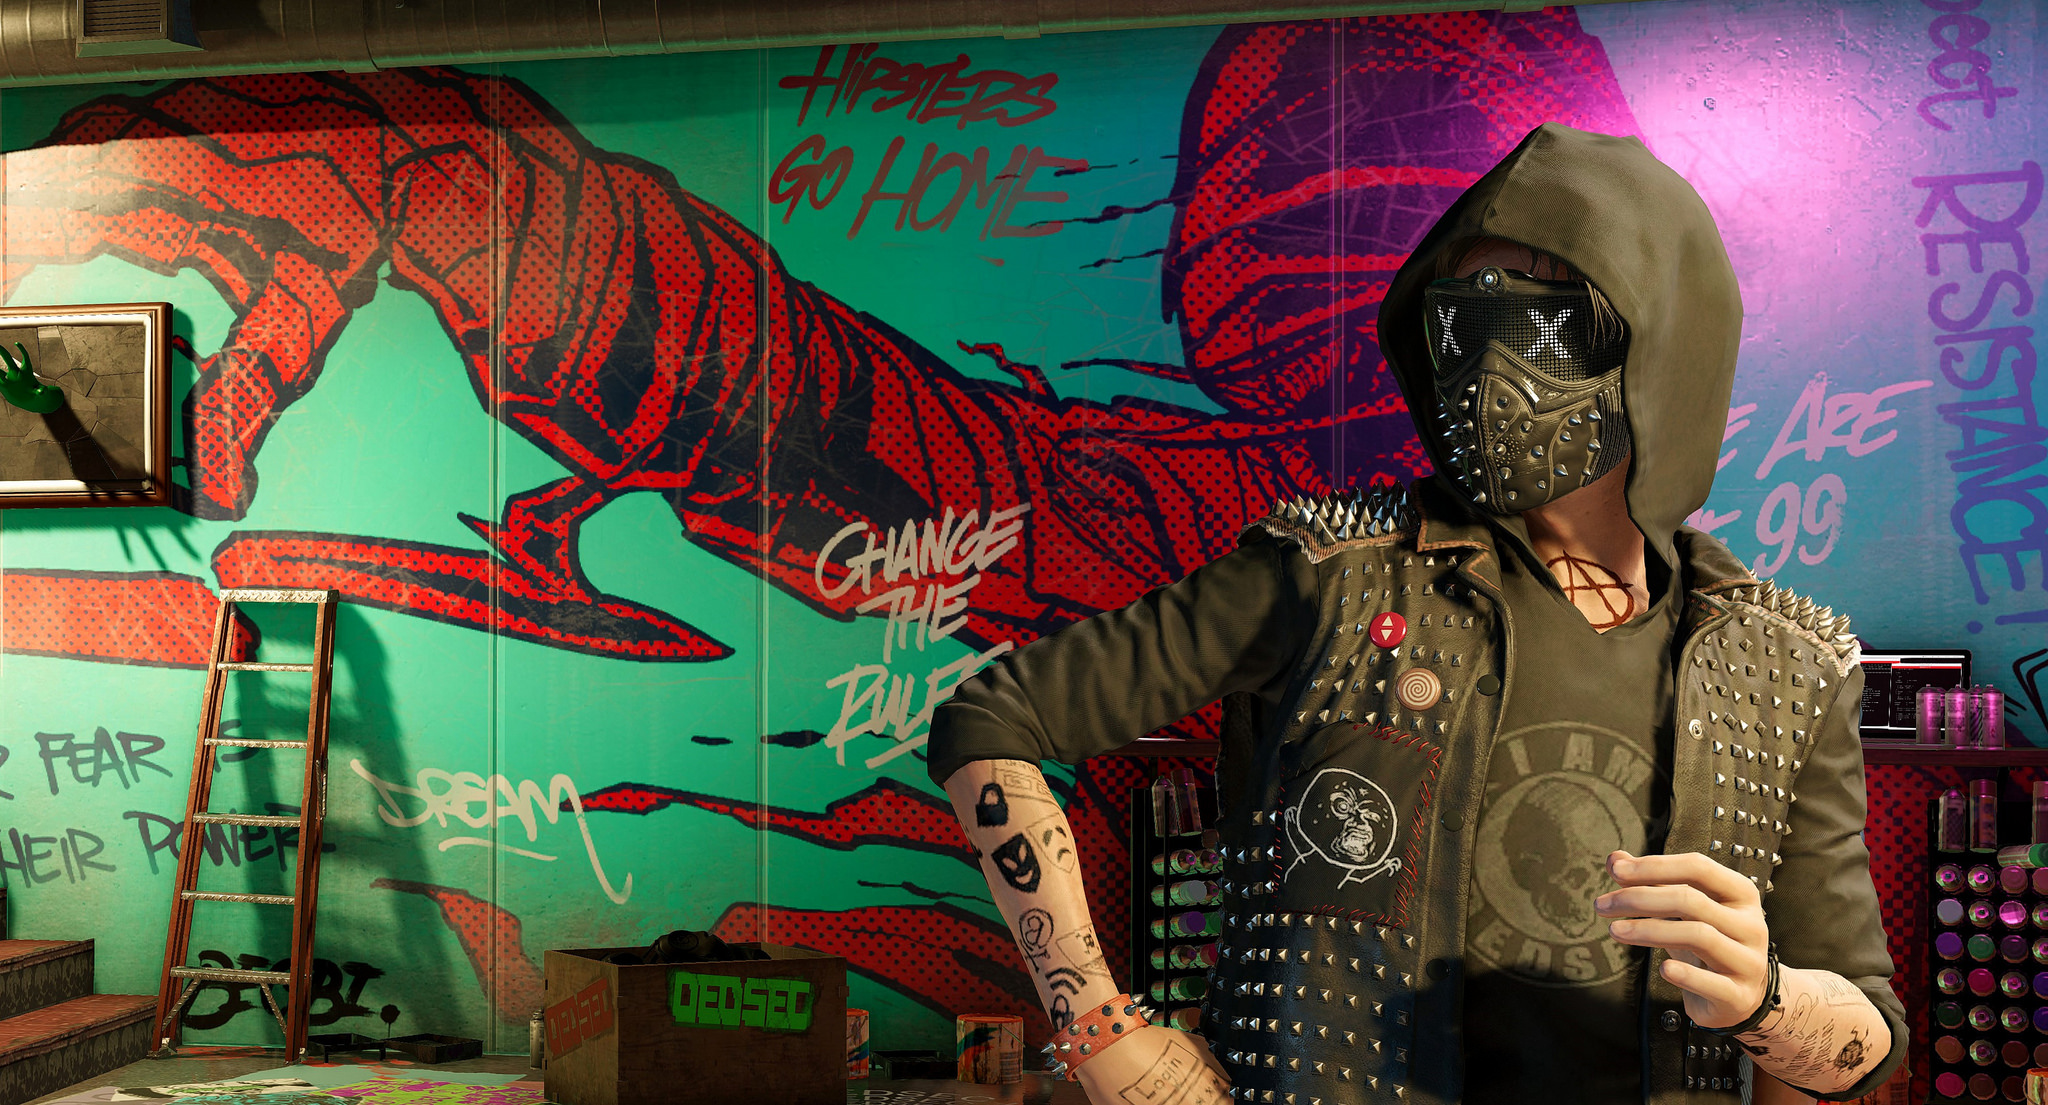 Watch Dogs 2 Hd 1080P, HD Games, 4k Wallpapers, Images ...